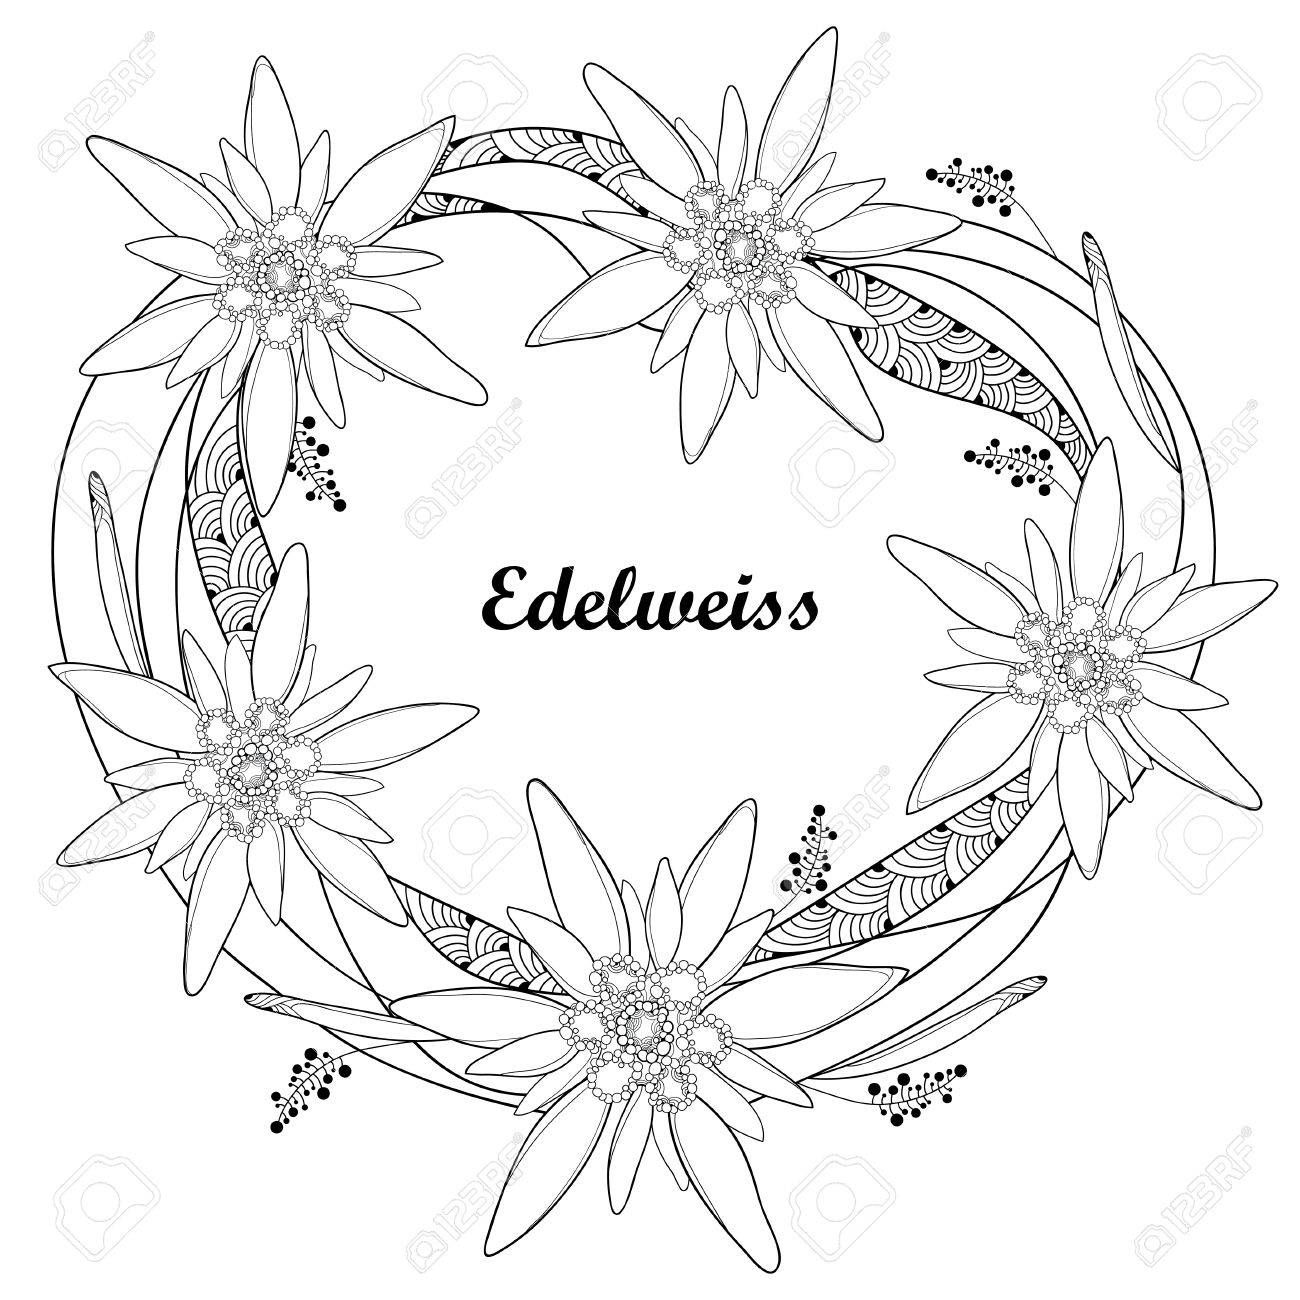 1300x1300 Ornate Round Wreath With Outline Edelweiss Or Leontopodium Alpinum